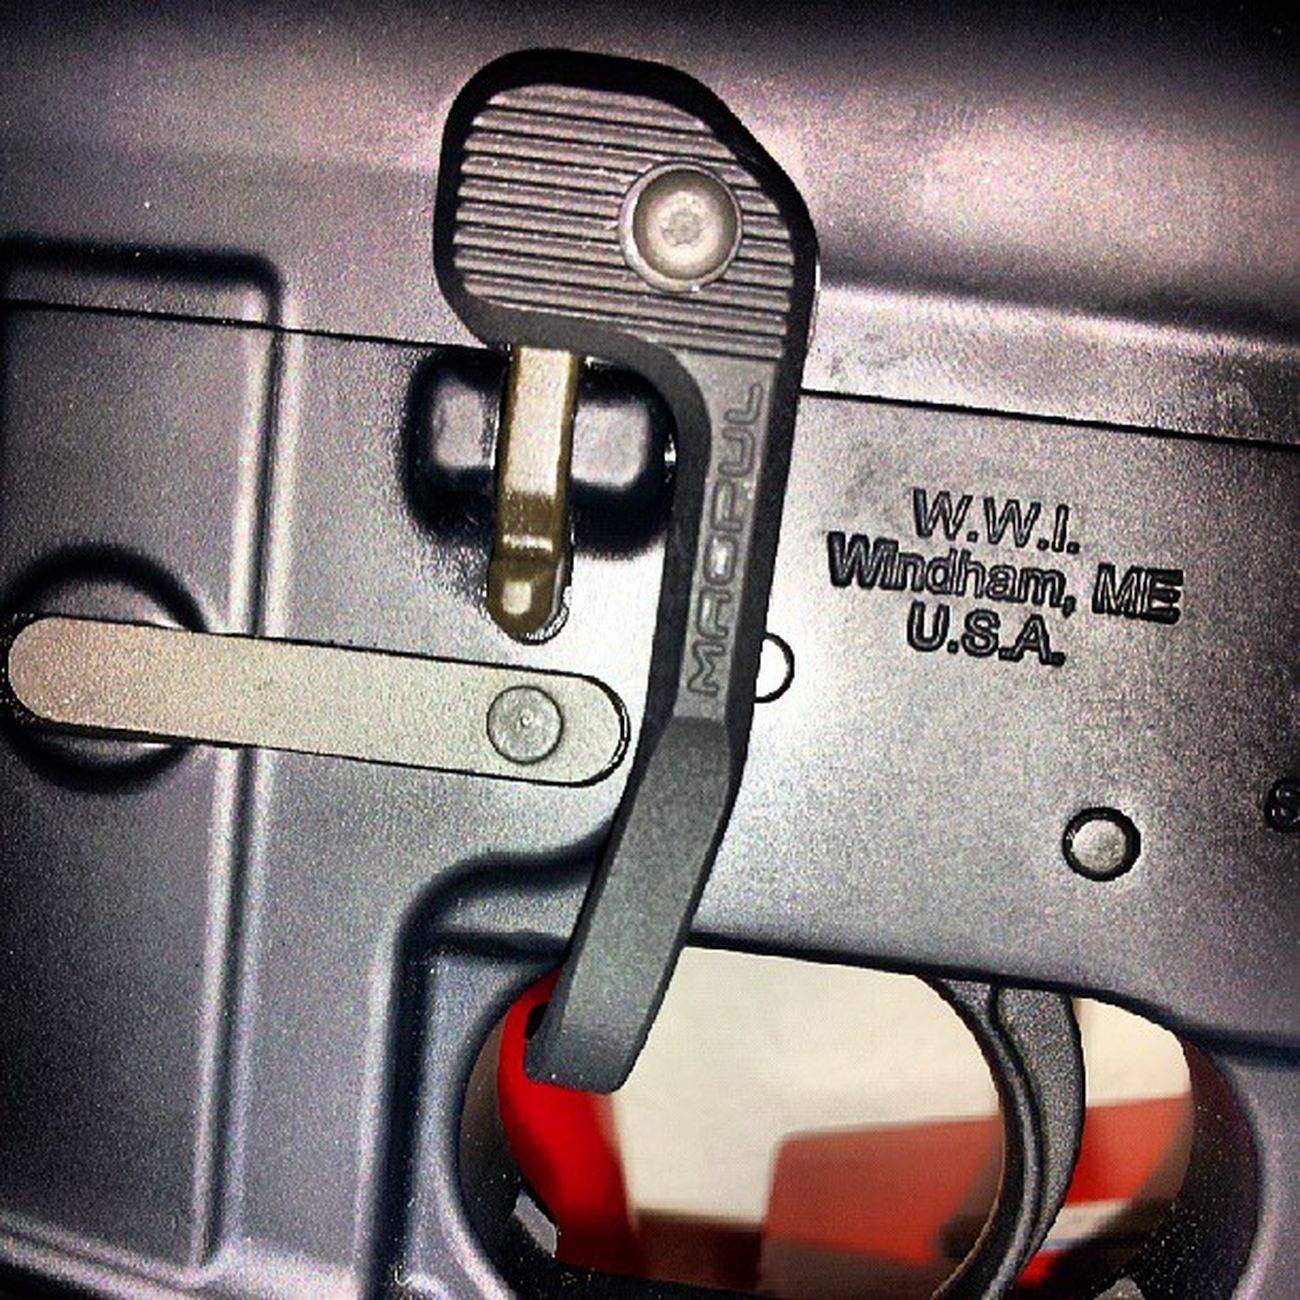 New MagpulBADlever ....it's more like Badass lever !! Lock and drop the bolt with your Triggerfinger !